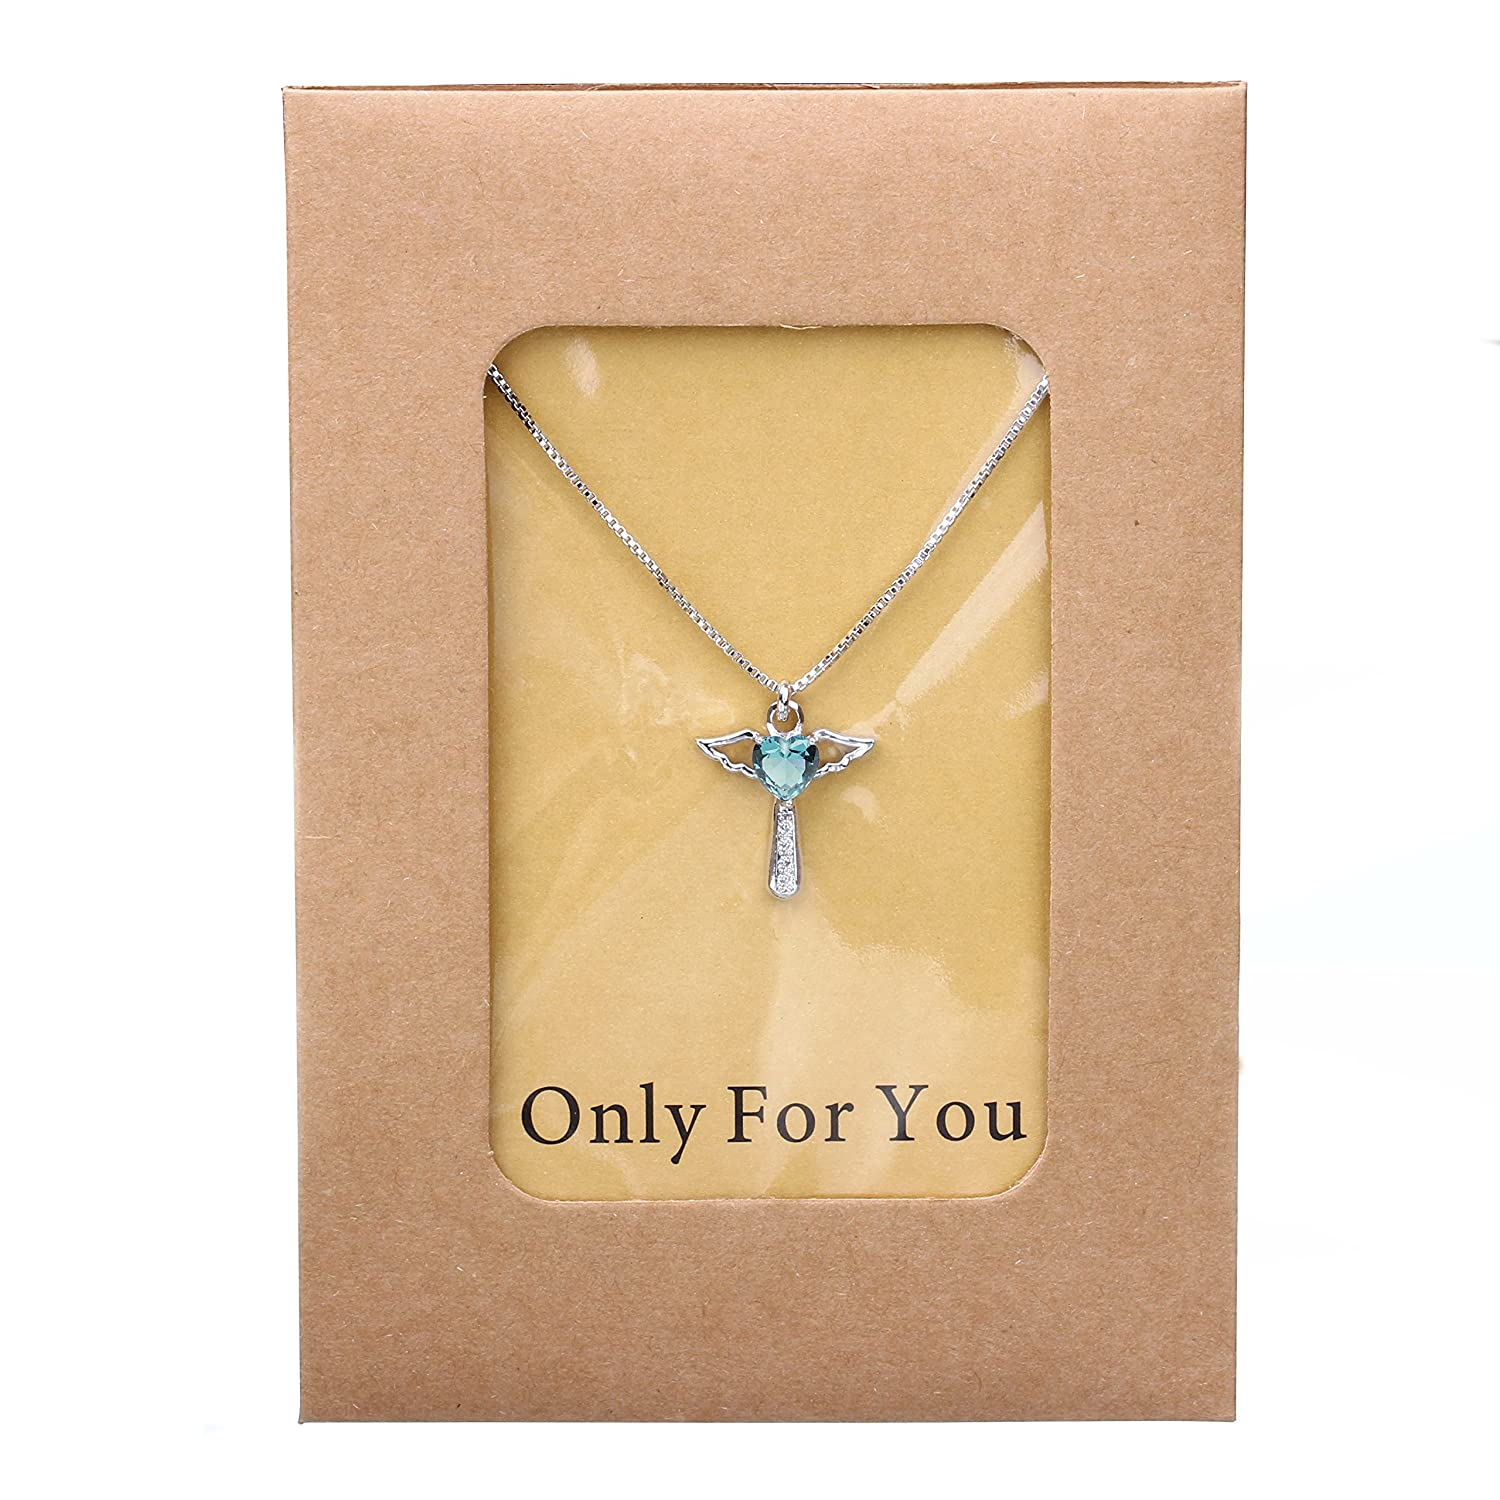 Ckysee Necklaces for Women Girls Cross Cubic Zirconia Angel Wing Birthstone Heart Charm Pendant Necklace